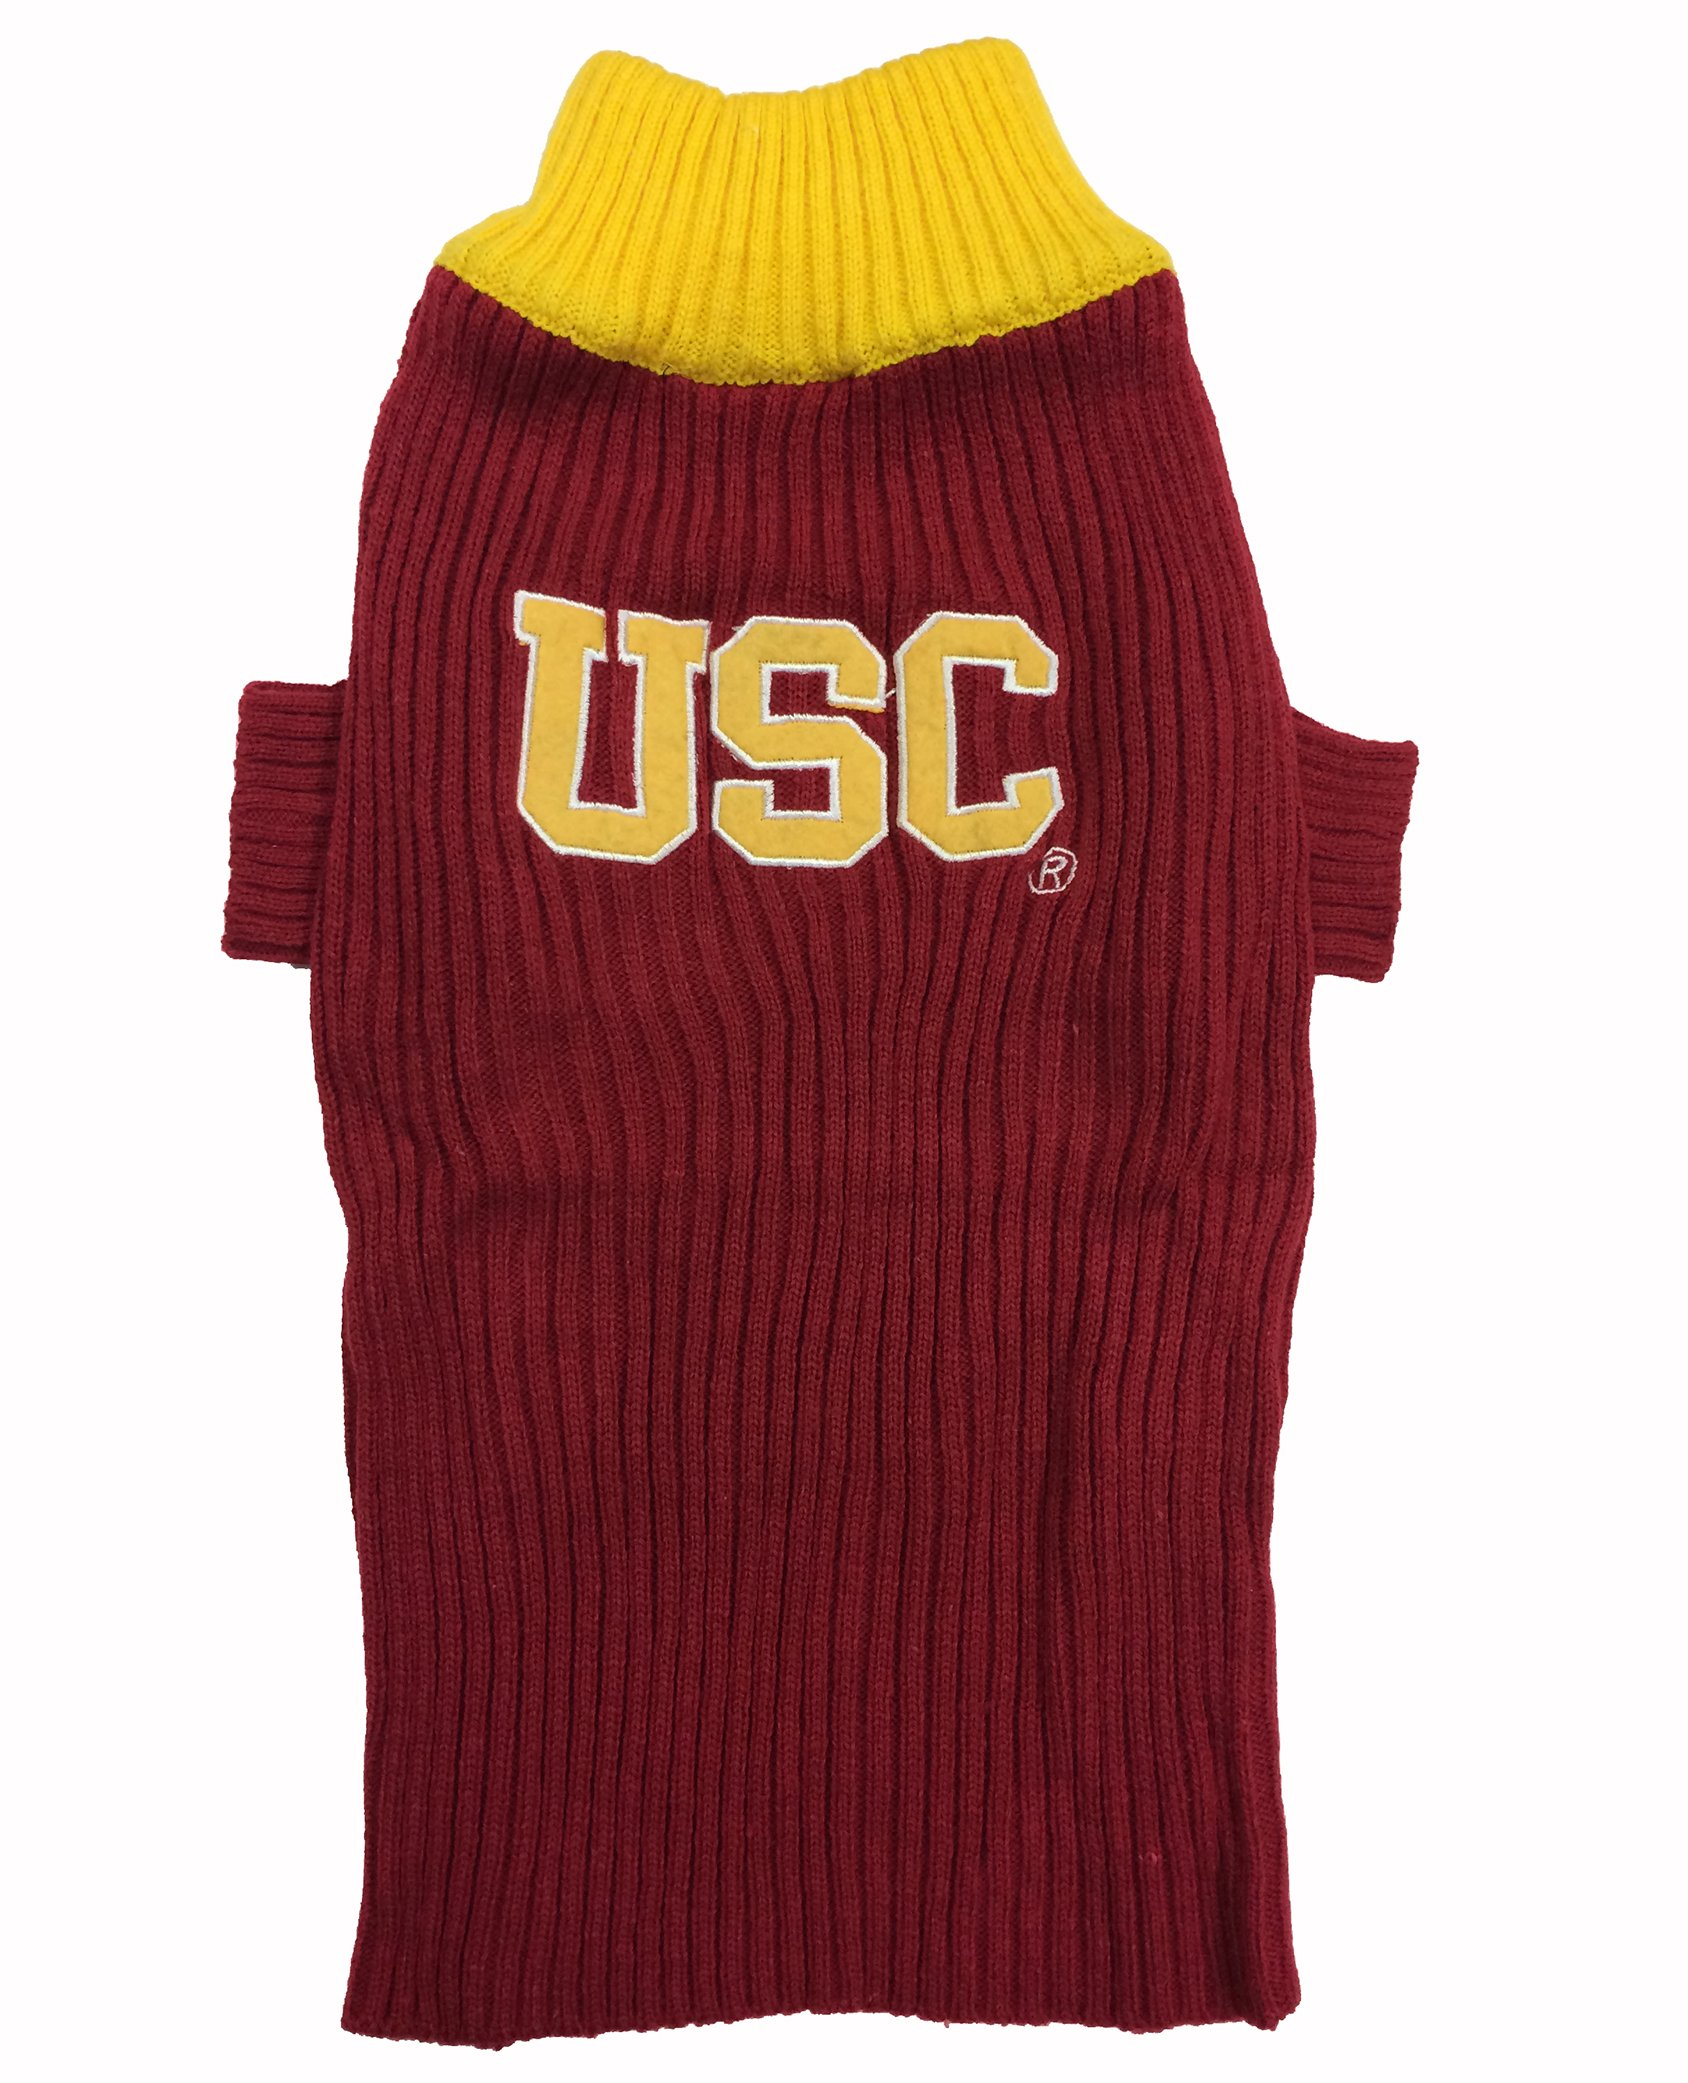 Pets First College USC Trojans V-Neck Dog Sweater, Small